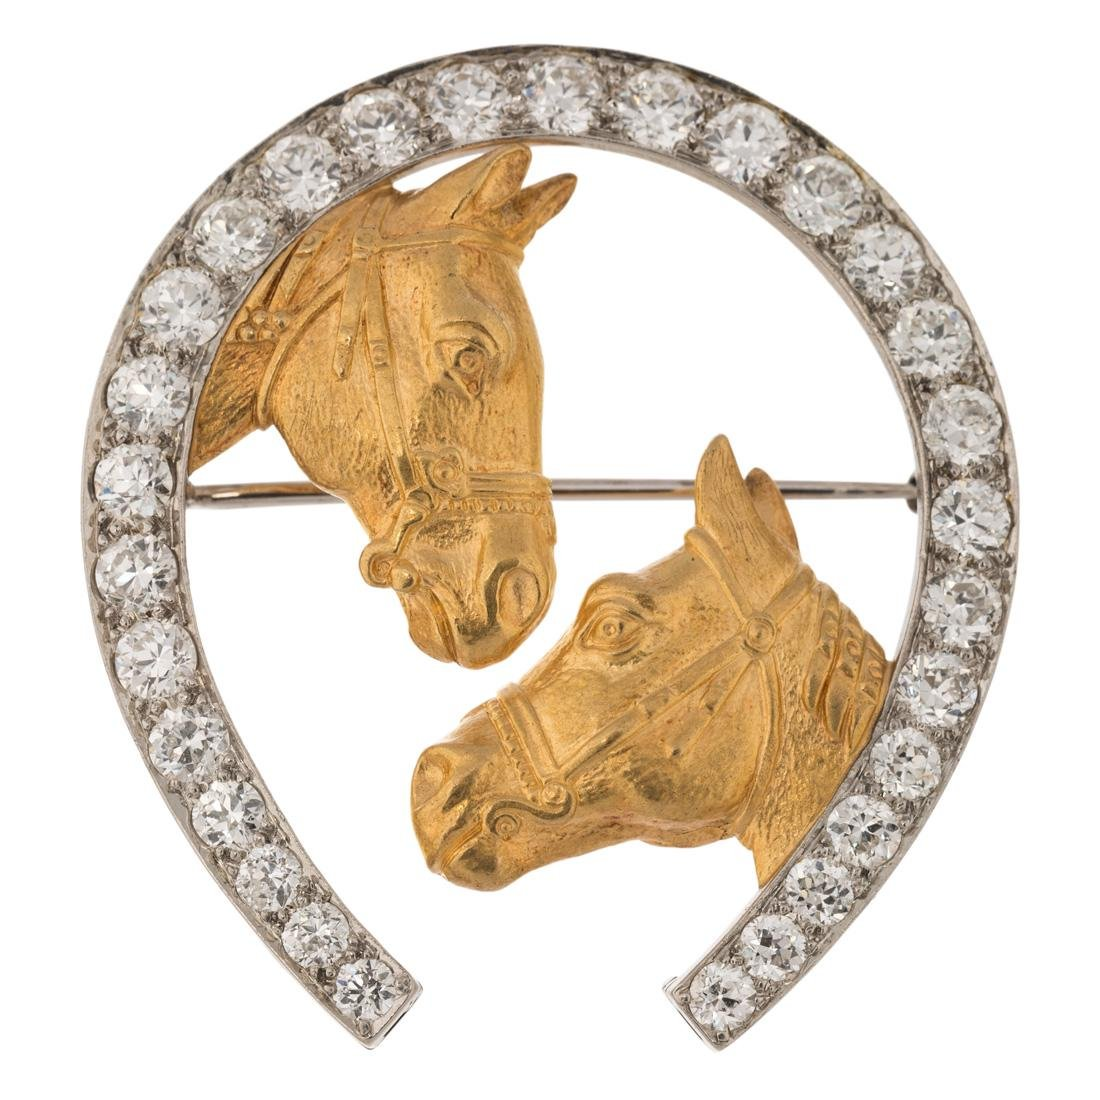 DIAMOND AND GOLD BROOCH IN A FORM OF HORSESHOE, LATE